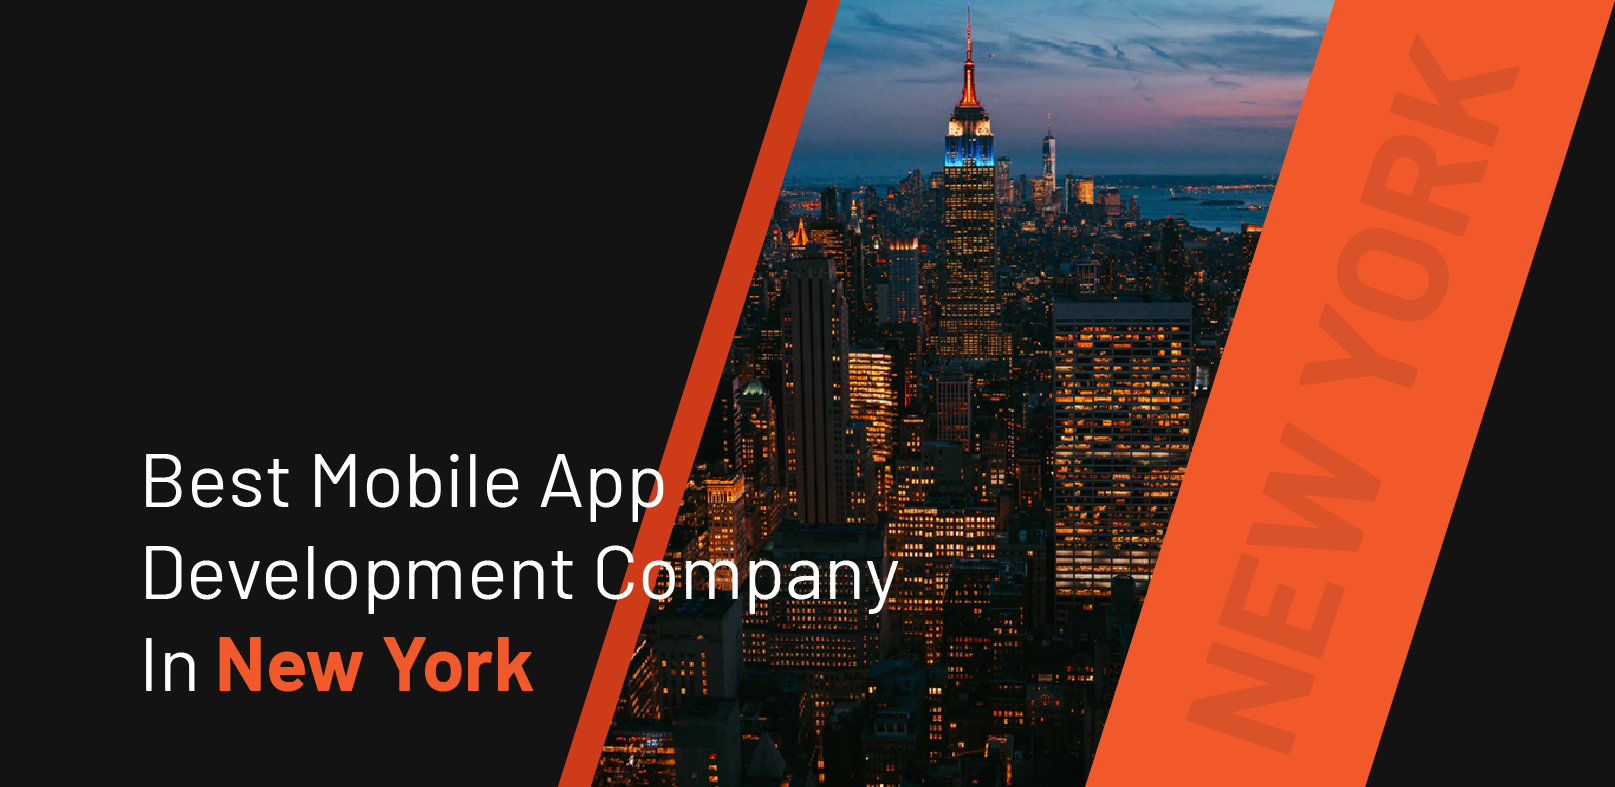 Best Mobile App Development Company In New York - WebClues Infotech